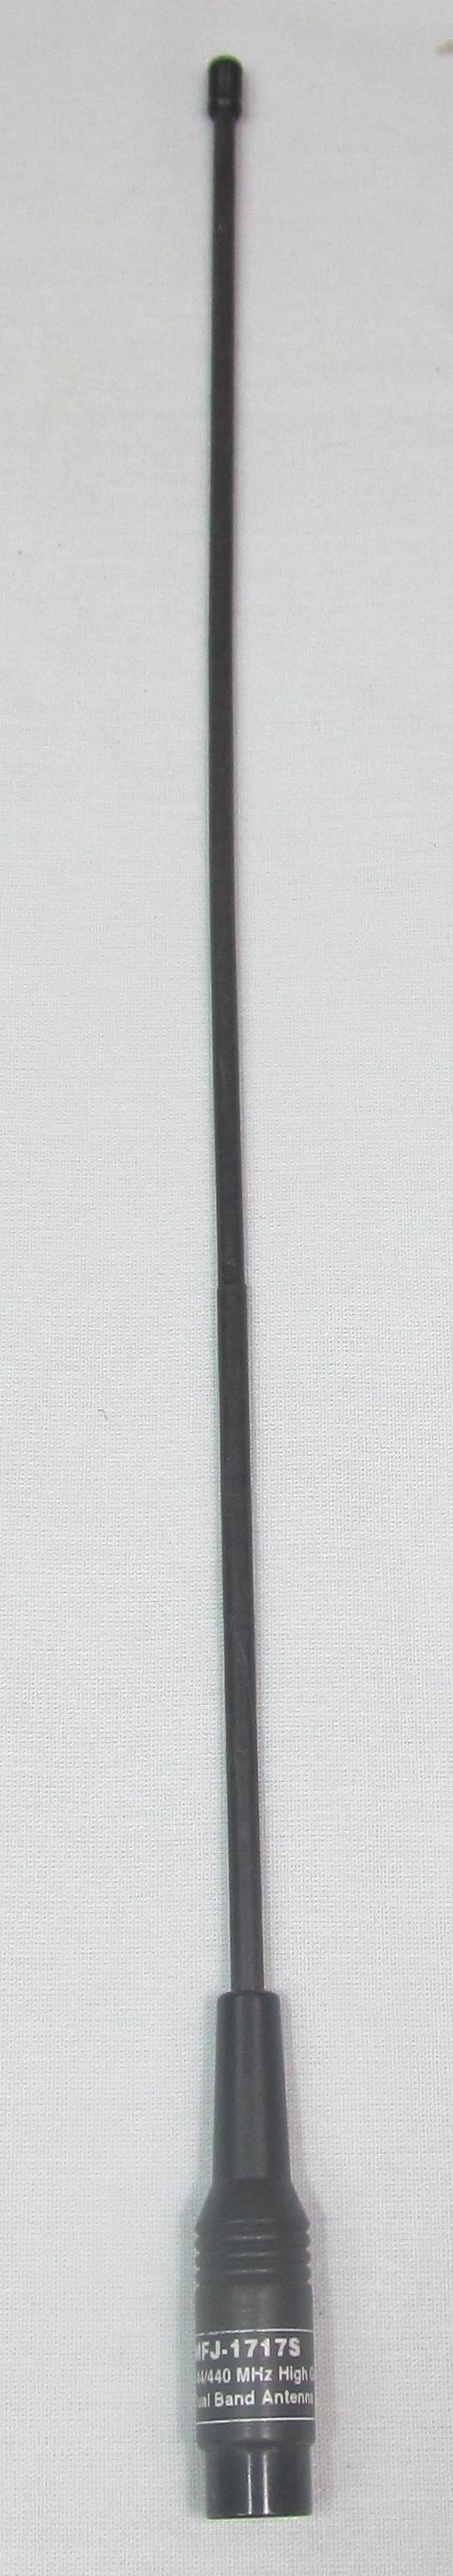 MFJ-1717S High Gain 144/440 MHz Flexible Duck HT Antenna w/ SMA